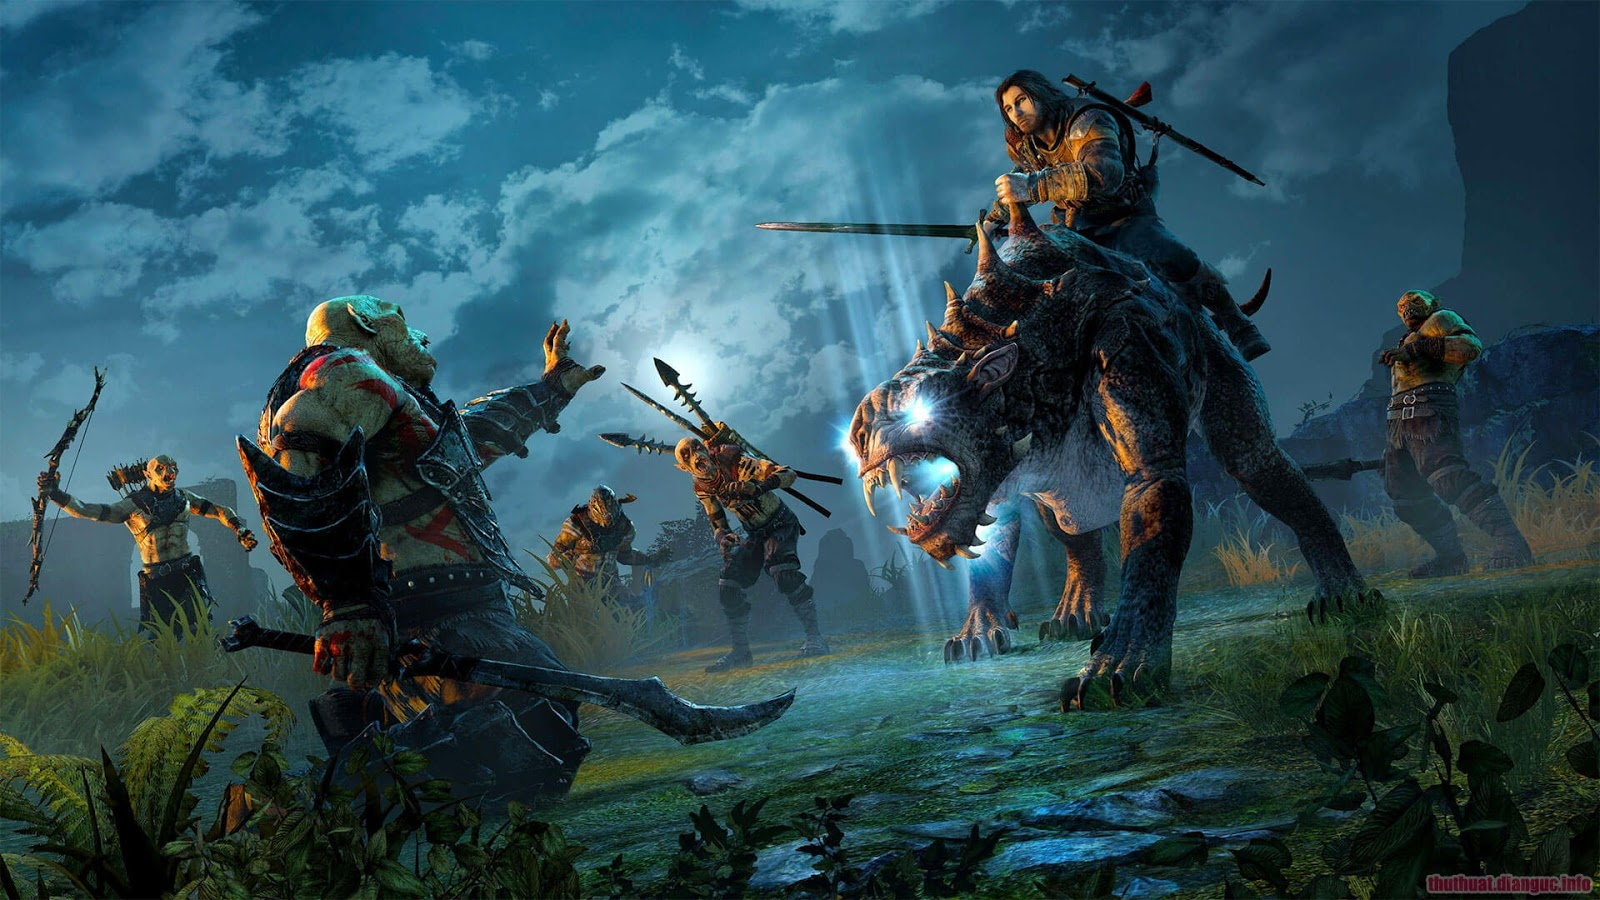 Download Game Middle-Earth: Shadow of War Full Crack